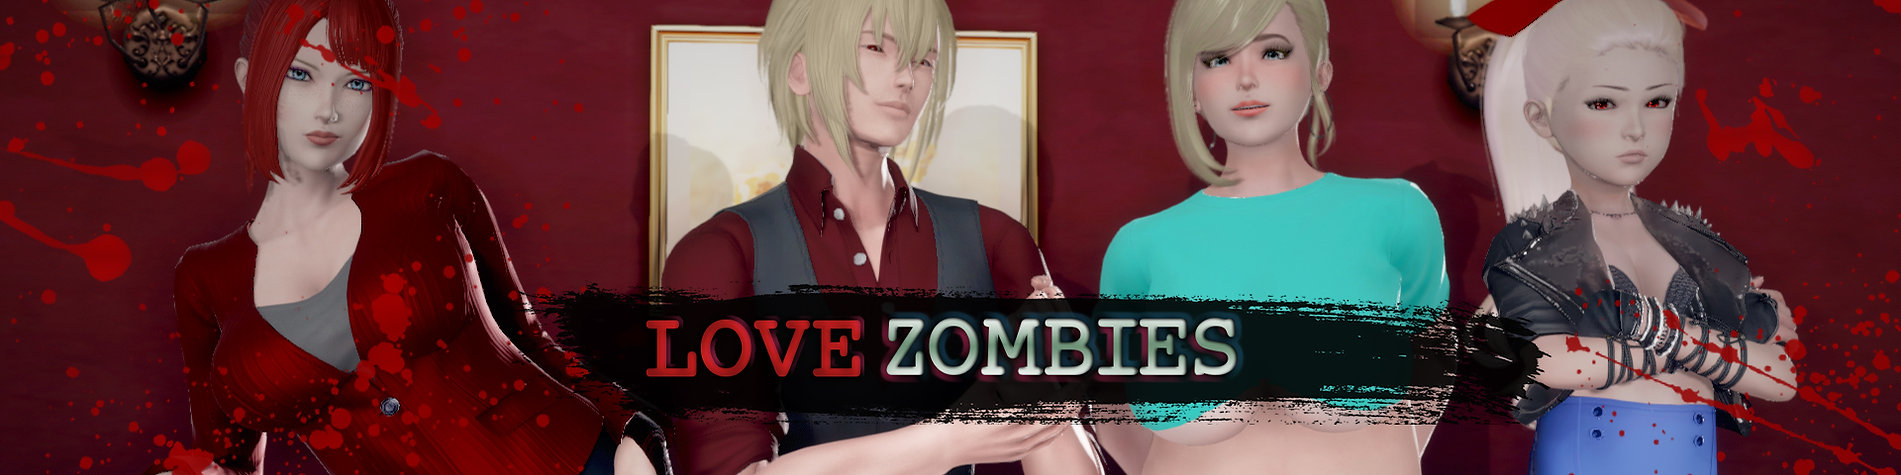 Love Zombies Main - Haru's Harem.jpg